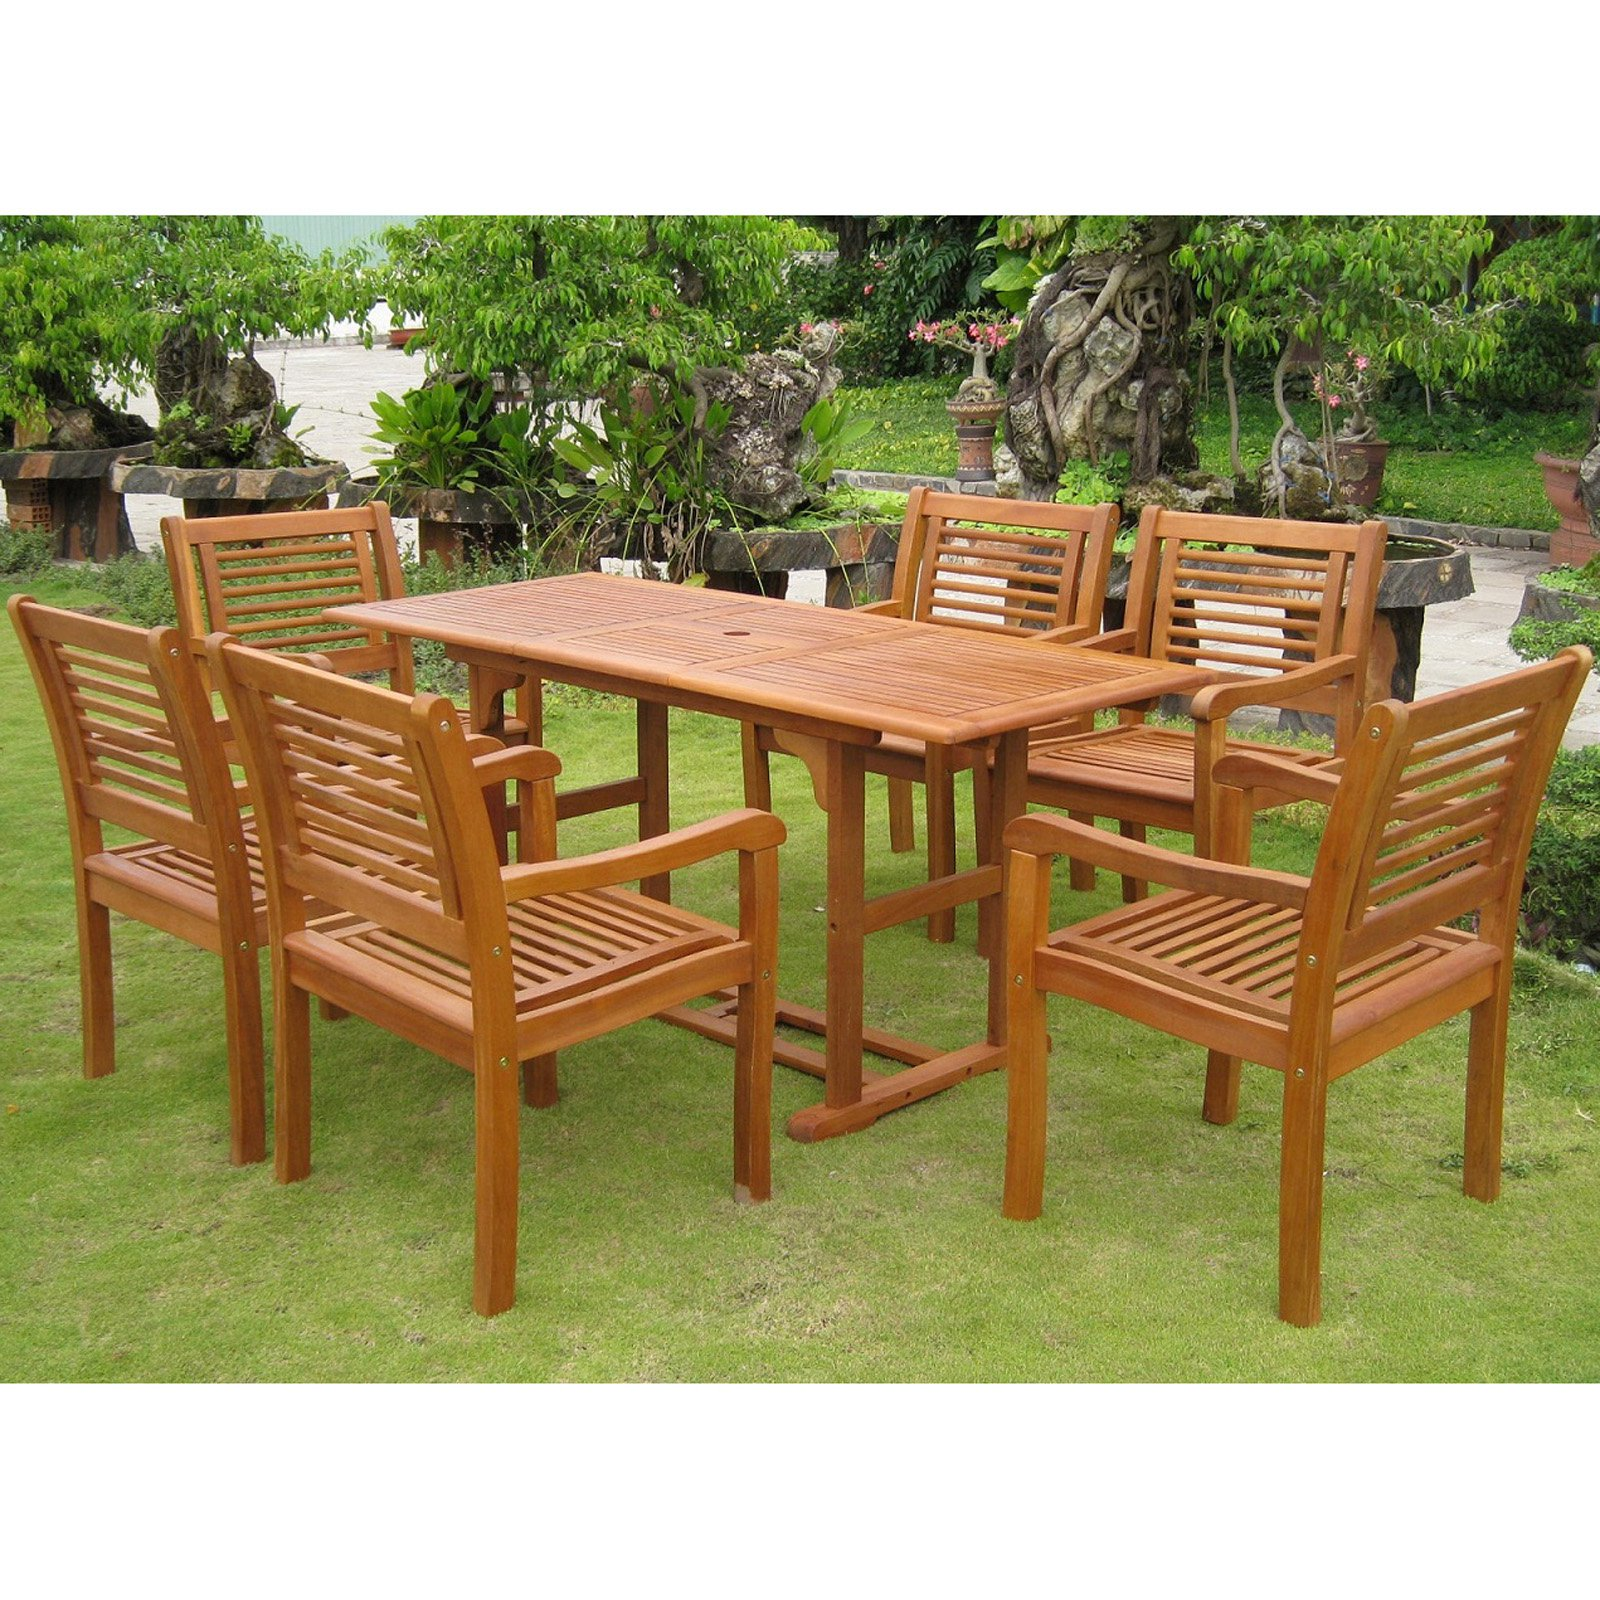 Outdoor International Caravan Royal Tahiti Cervera Balau Wood 7 Piece Patio Dining Set